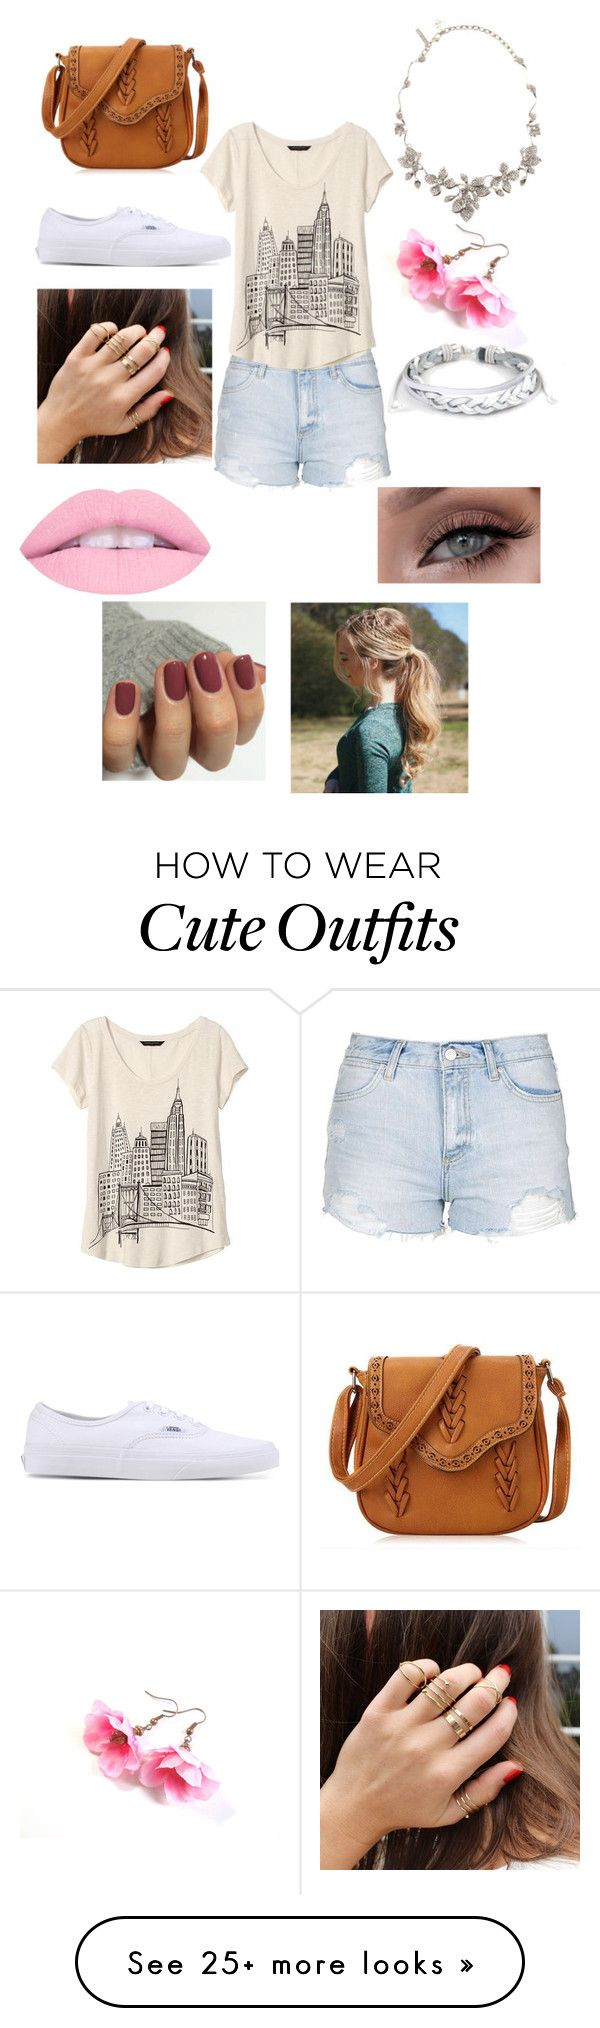 """""""Hangin' Out with my Besties Outfit"""" by pretty1d on Polyvore featuring Topshop, Banana Republic, Vans, Oscar de la Renta and West Coast Jewelry"""